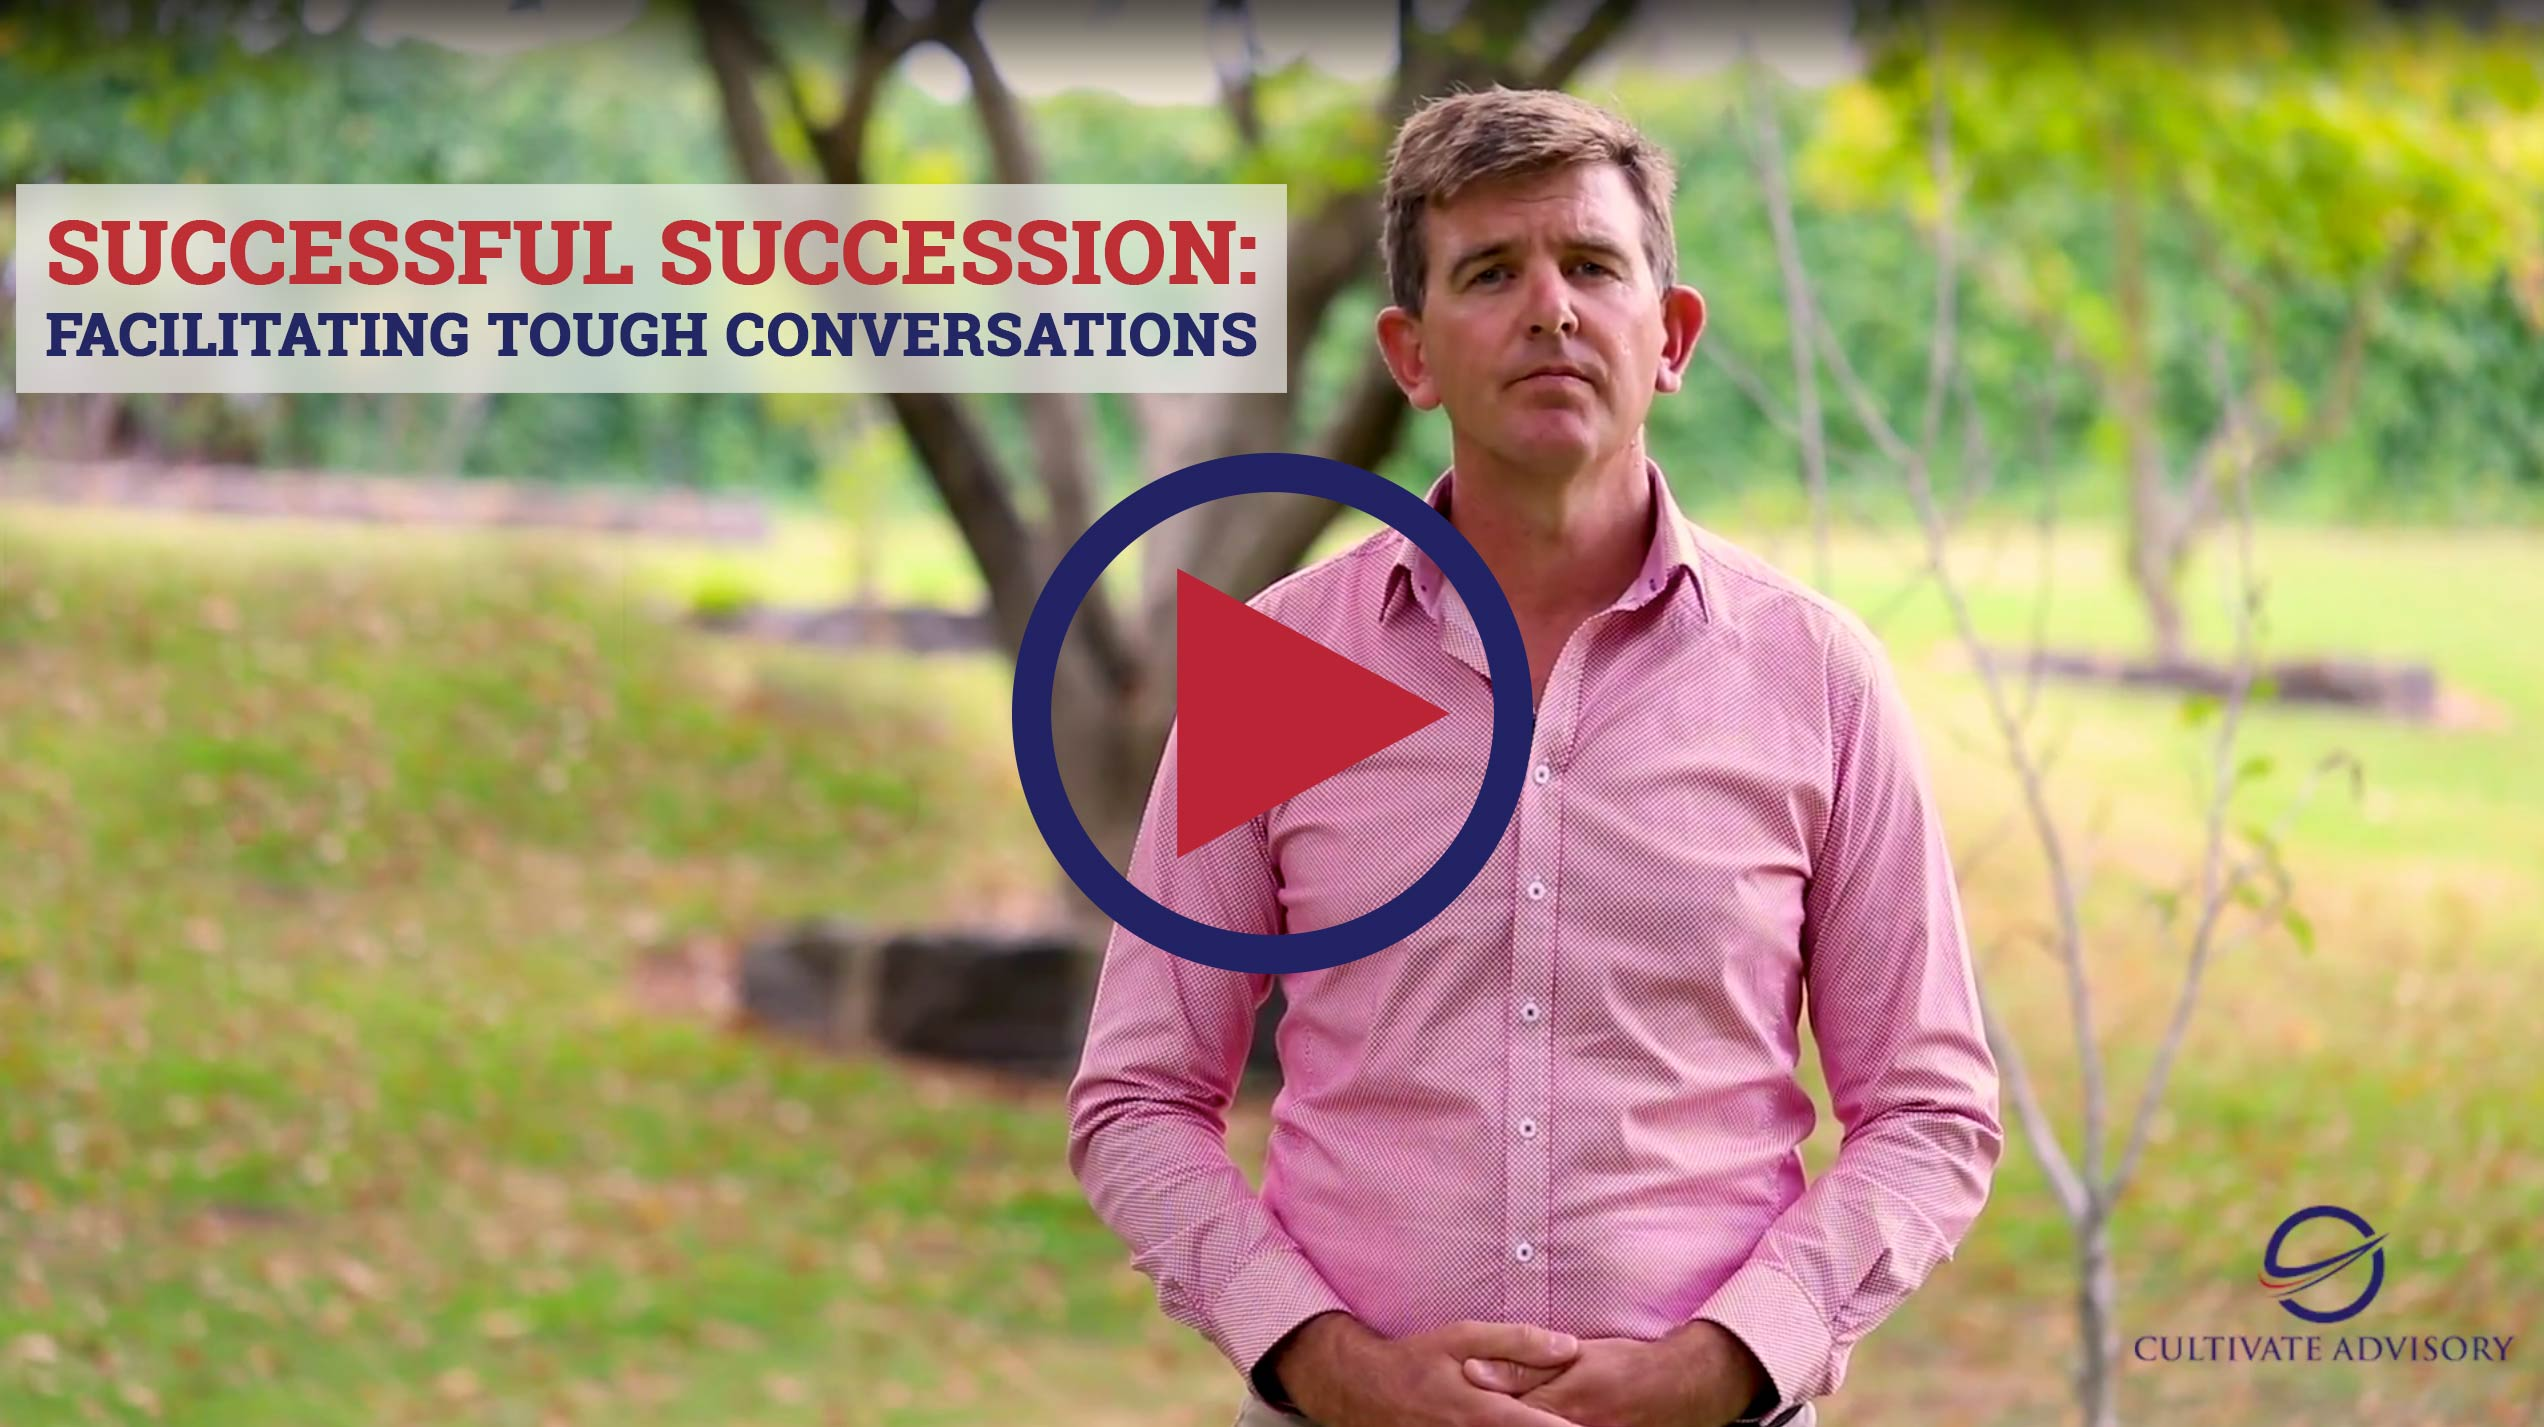 Cultivate Advisory Successful Succession